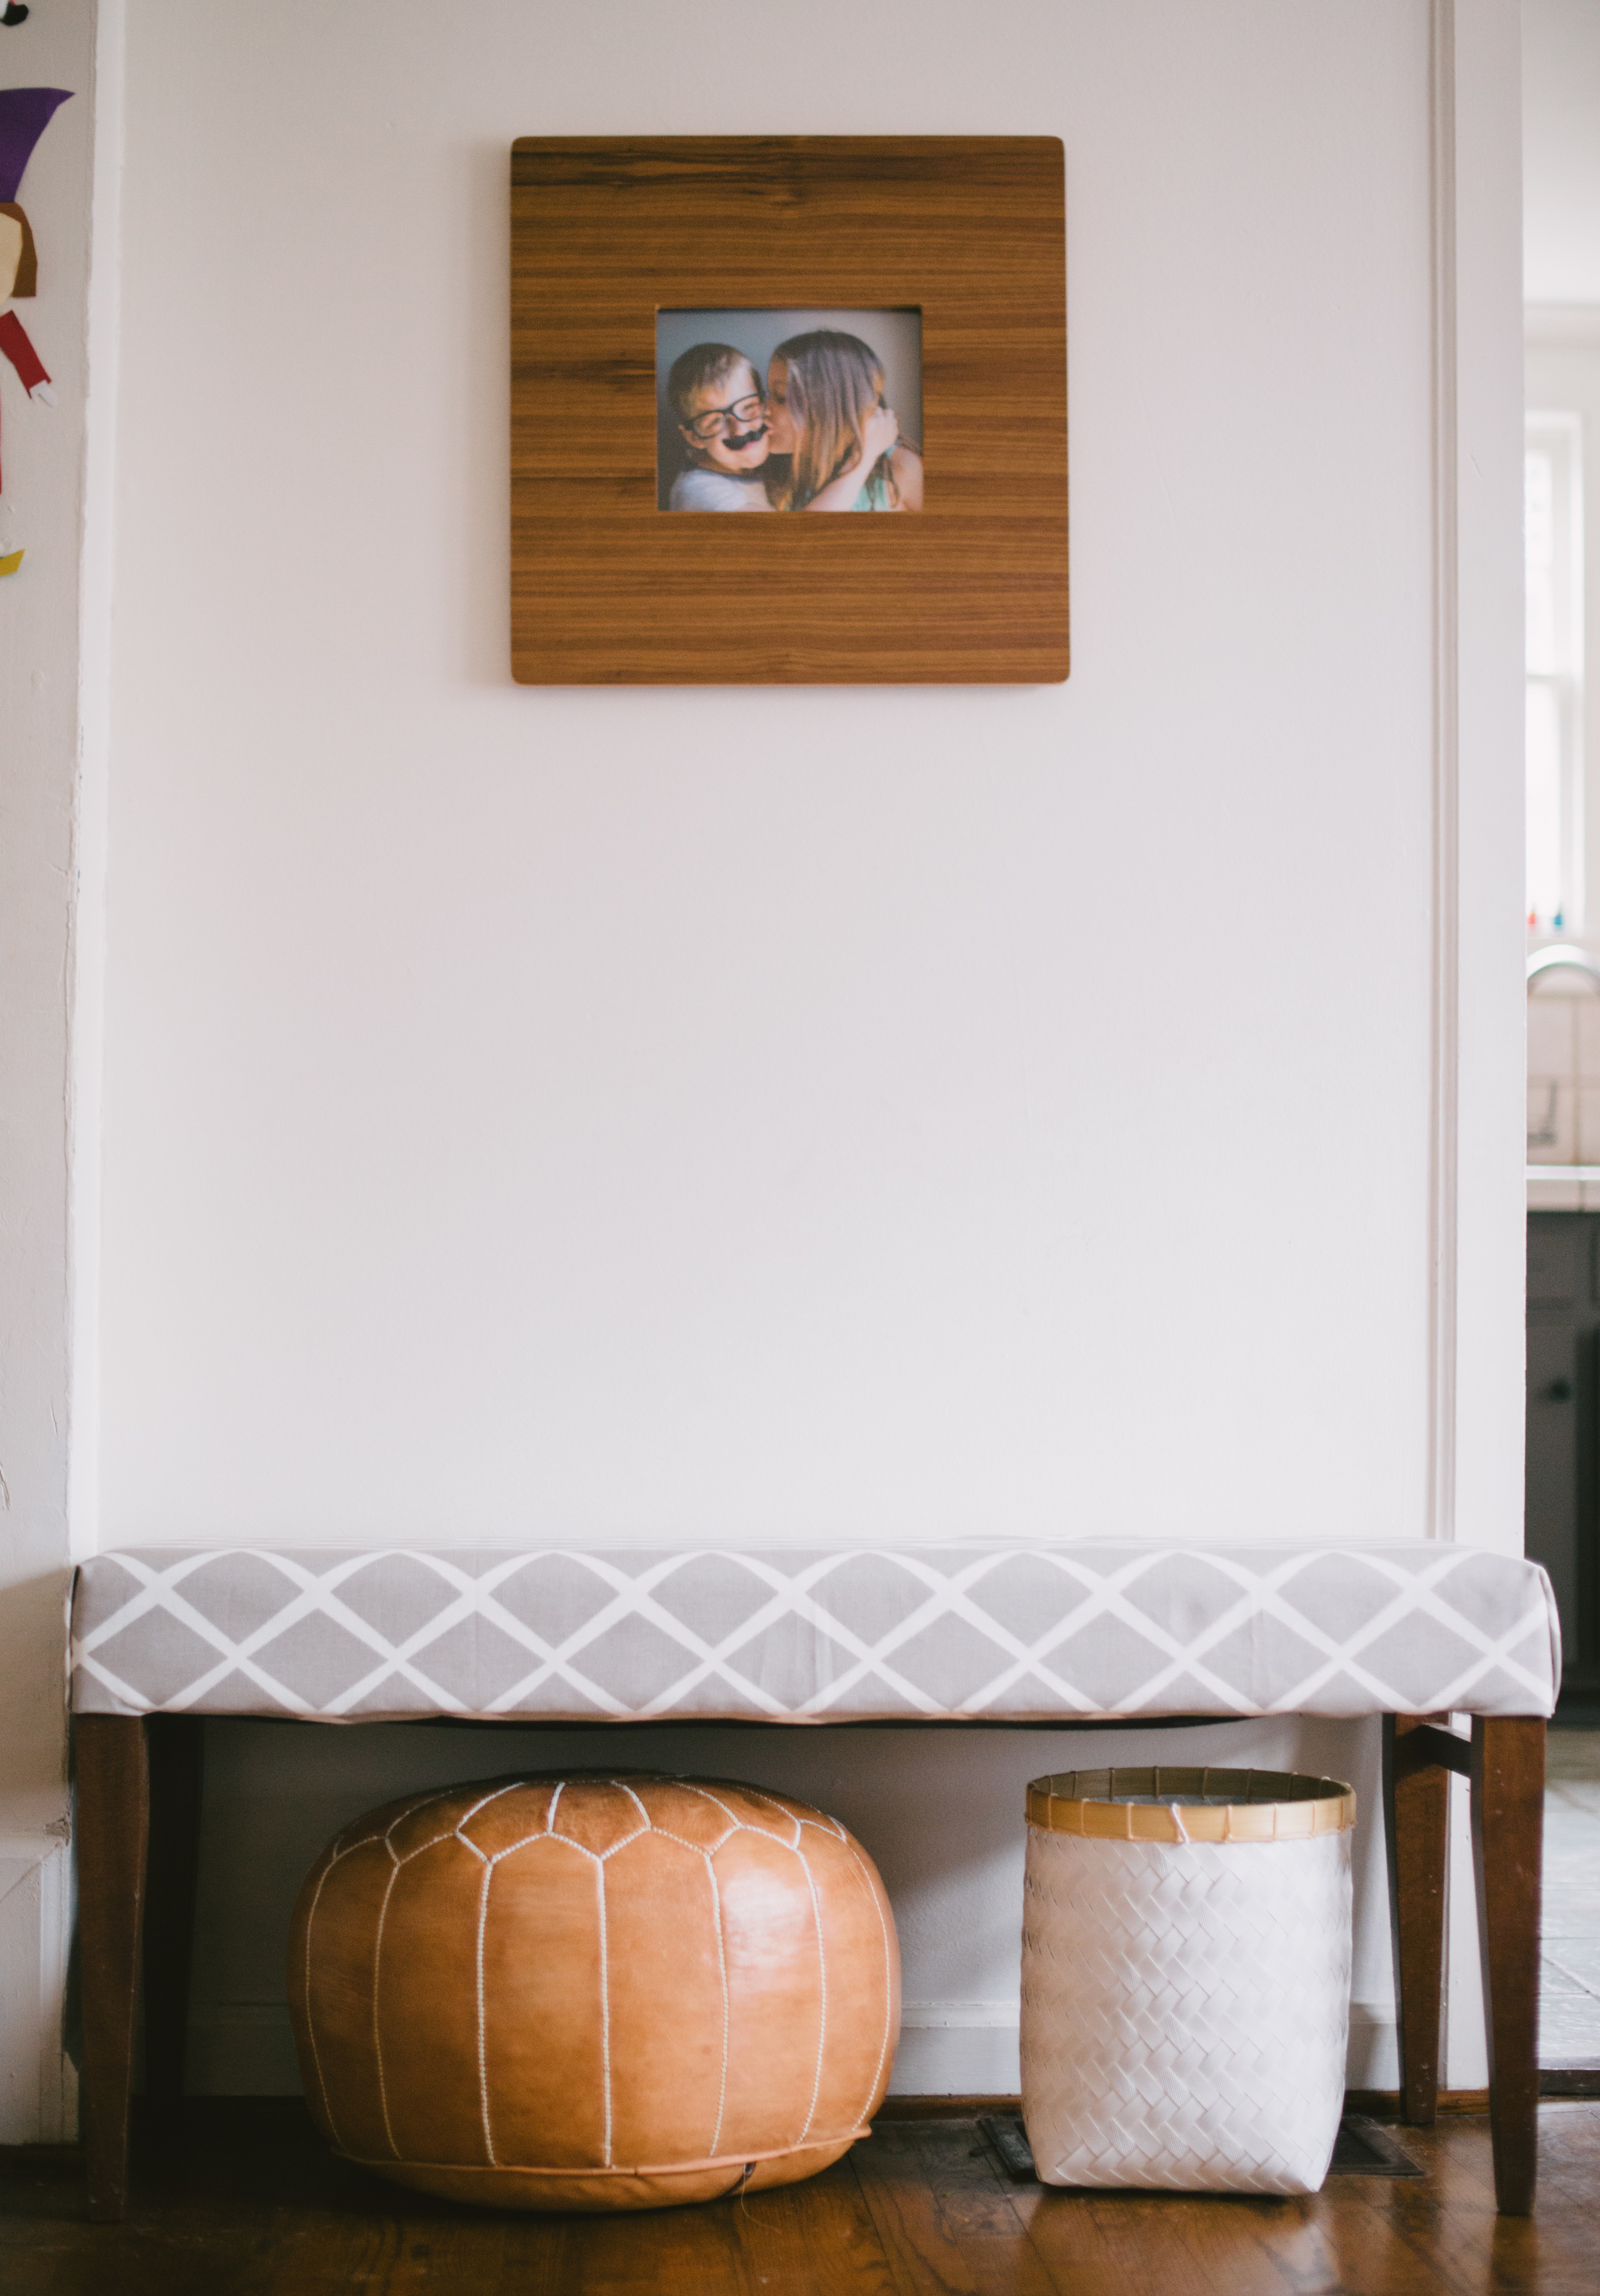 Sources:  fabric:  Serena and Lily  | pouf { similar } | frame: Room and Board | basket: Homegoods { similar } | wall color: talc by Martha Stewart for Home Depot